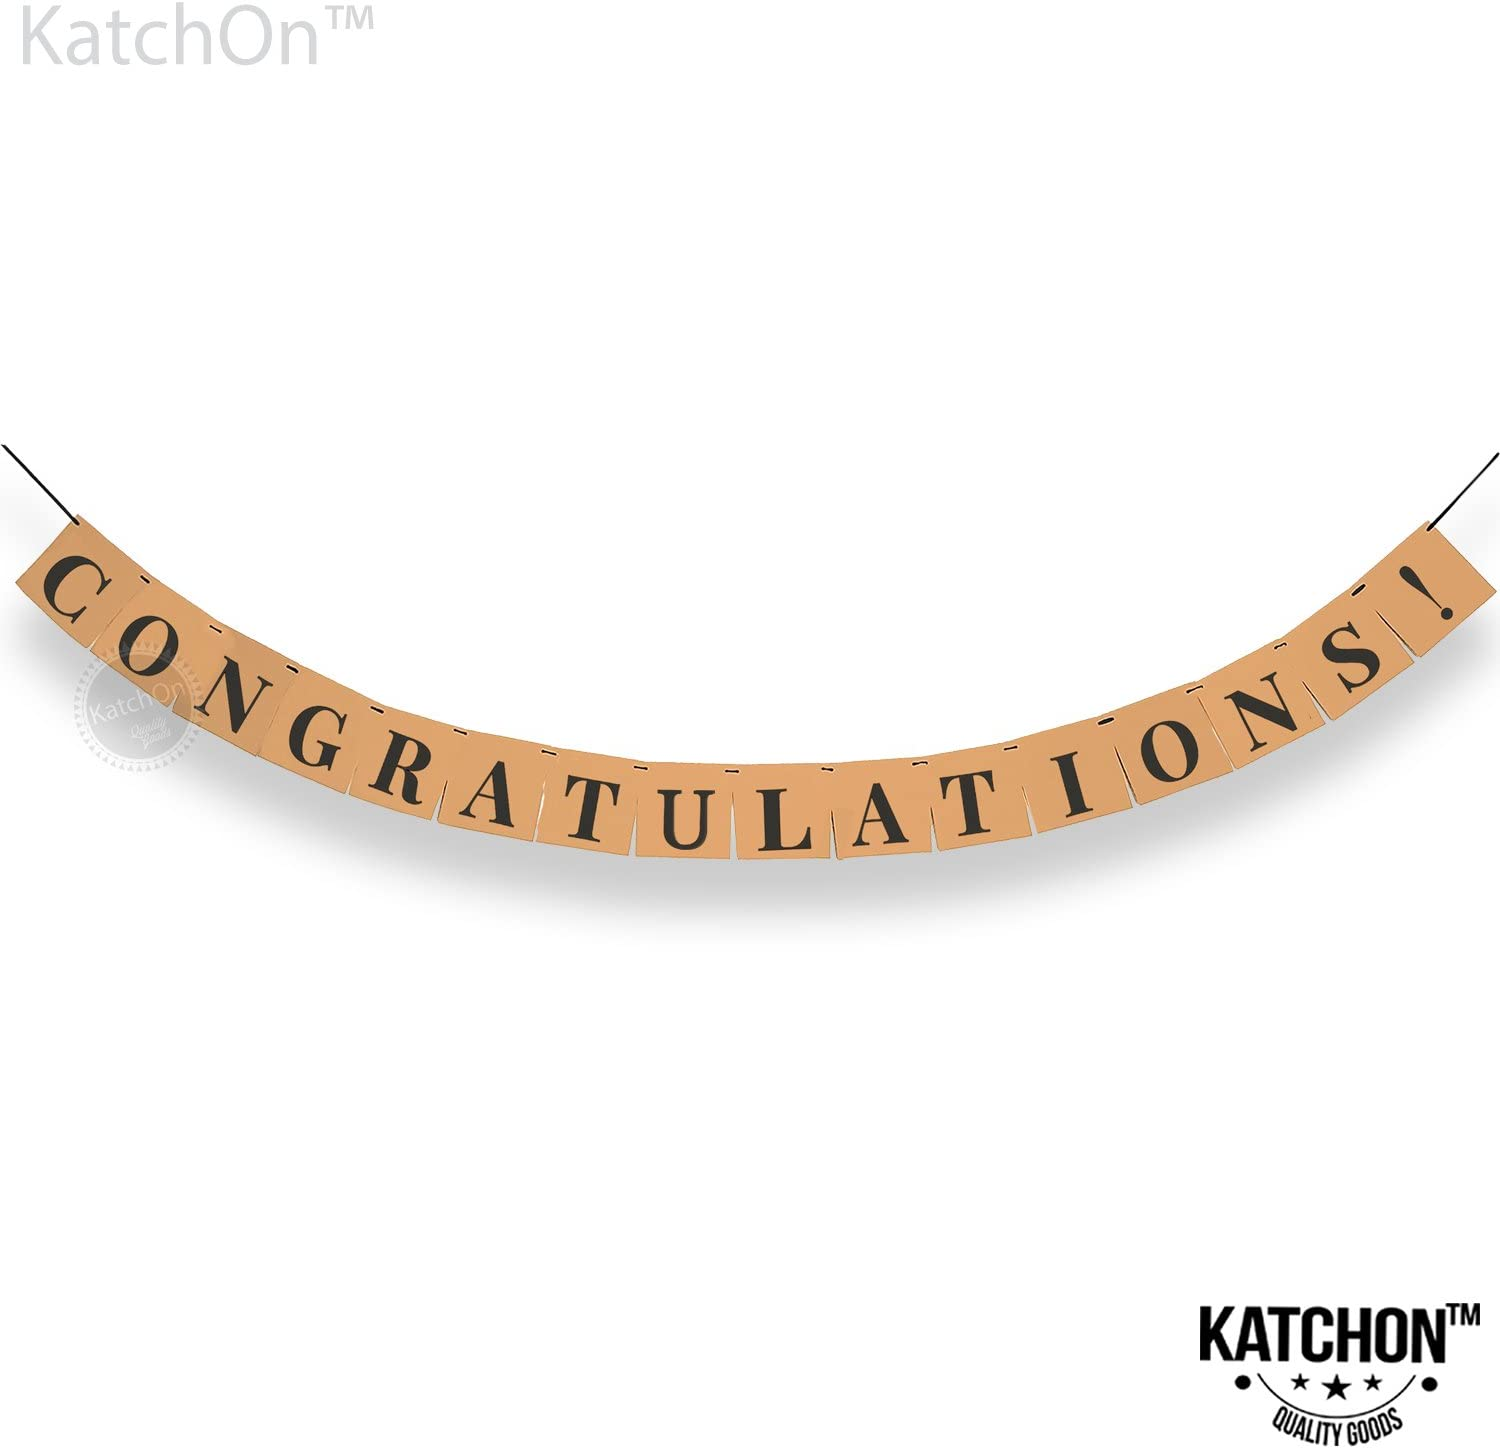 Congratulations Banner, Graduation Party Supplies - Classy Eye Catching Kraft Paper | Graduation Decorations| Graduations Banner Sign | for Achievement Party Celebrations, Retirement, Bridal Shower